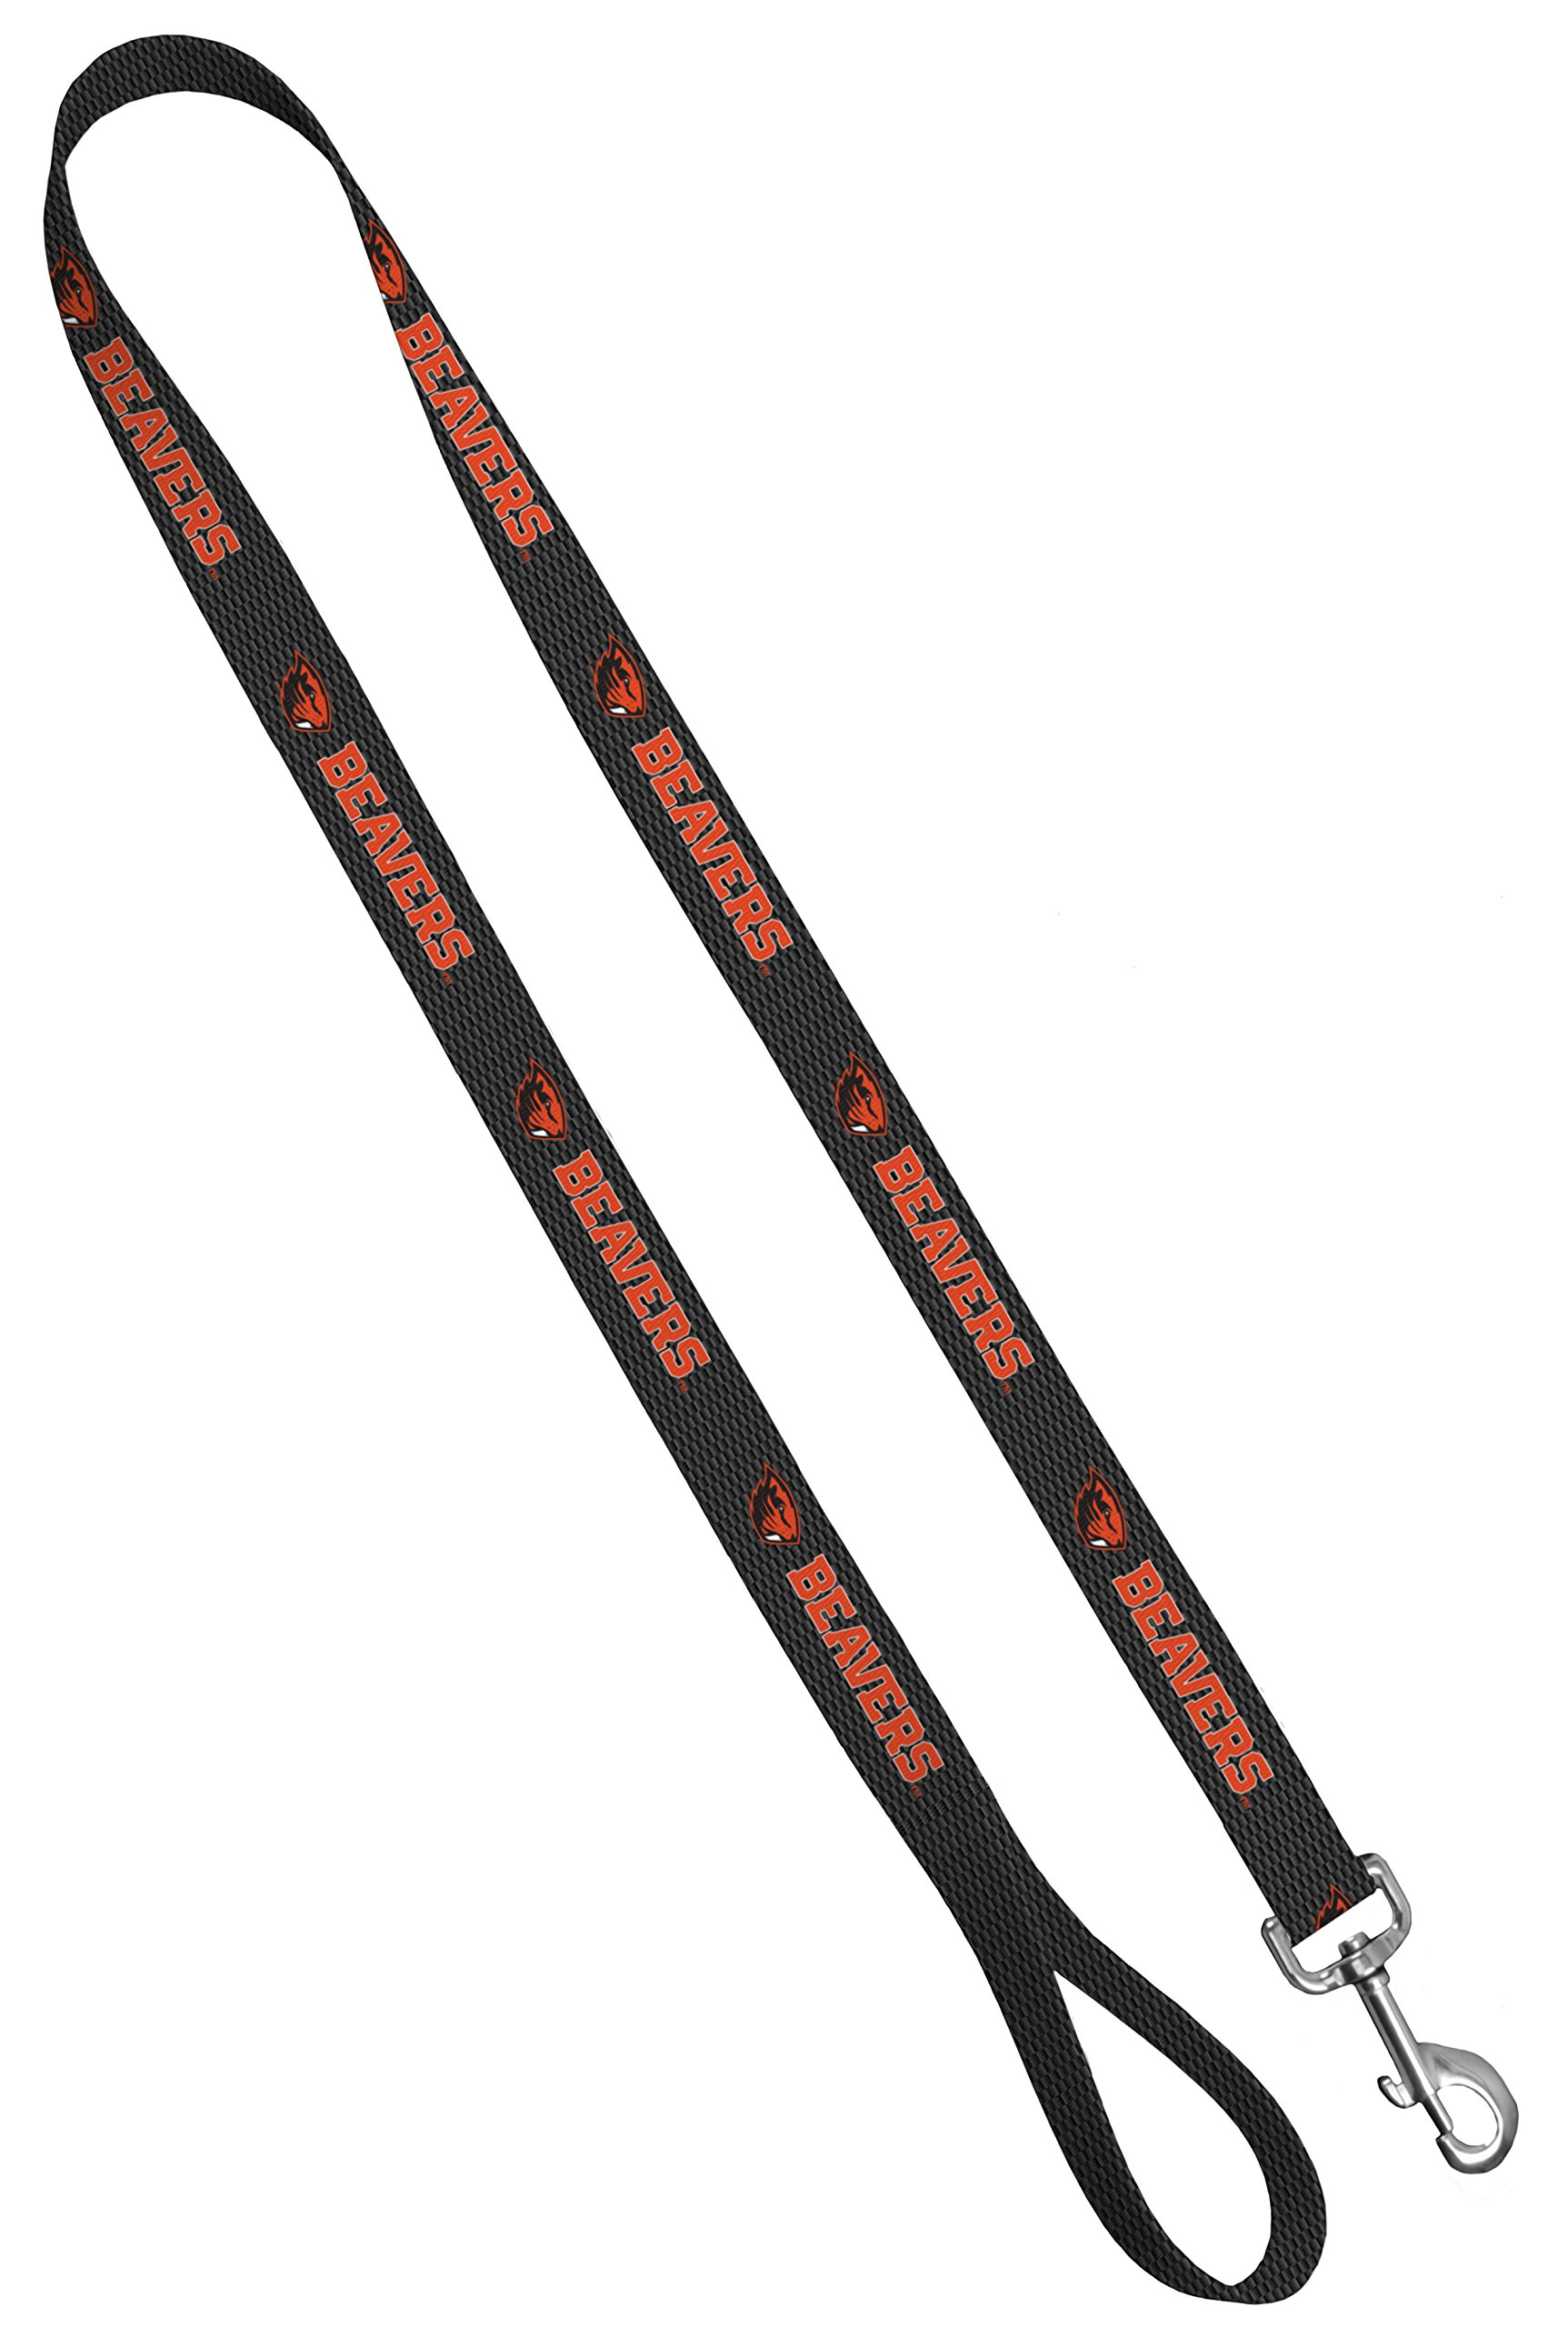 Moose Pet Wear Dog Leash - Oregon State University Beavers Pet Leash, Made in the USA - 1 Inch Wide x 6 Feet Long, Beaver on Carbon Fiber